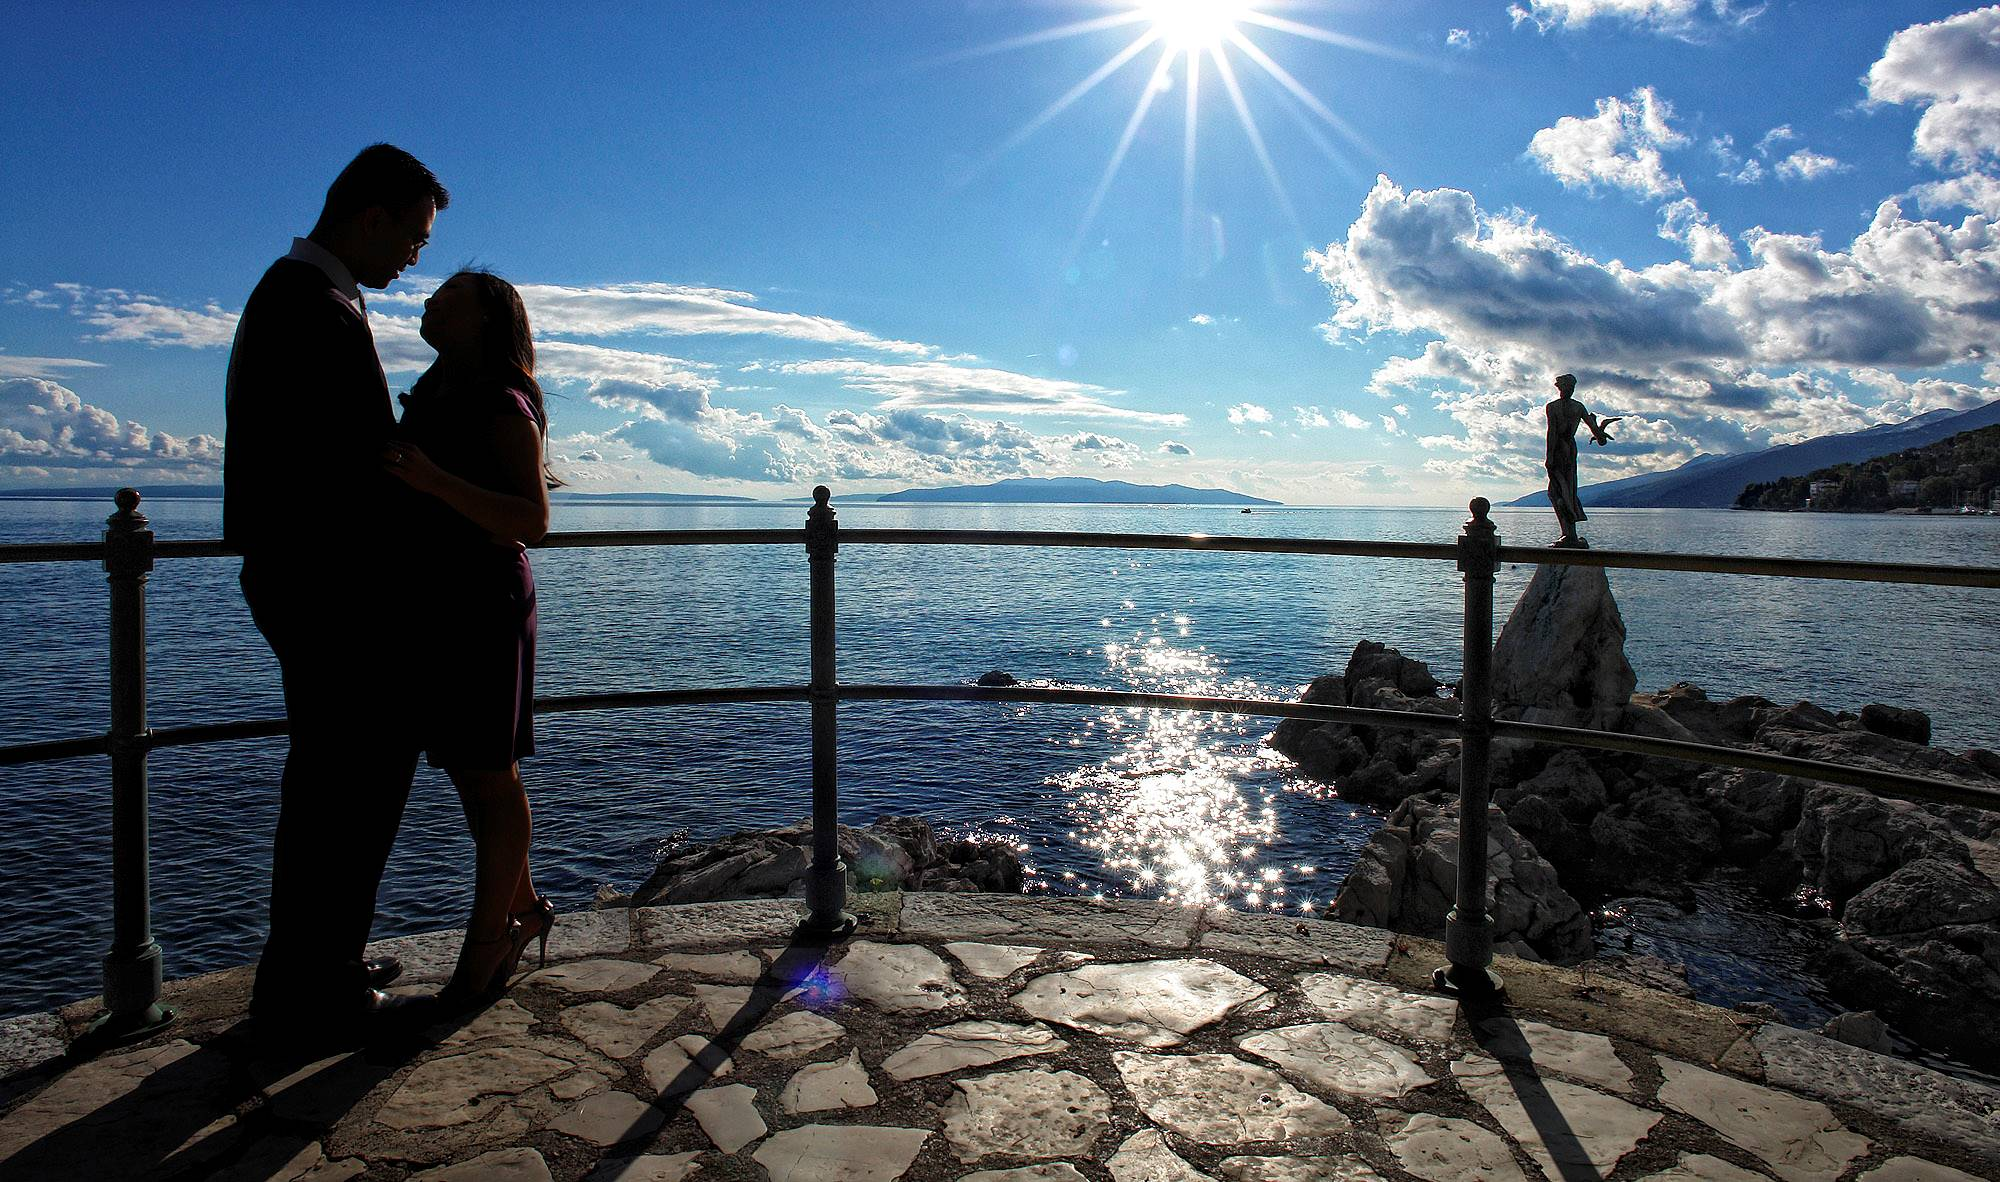 February in Opatija - the month of love